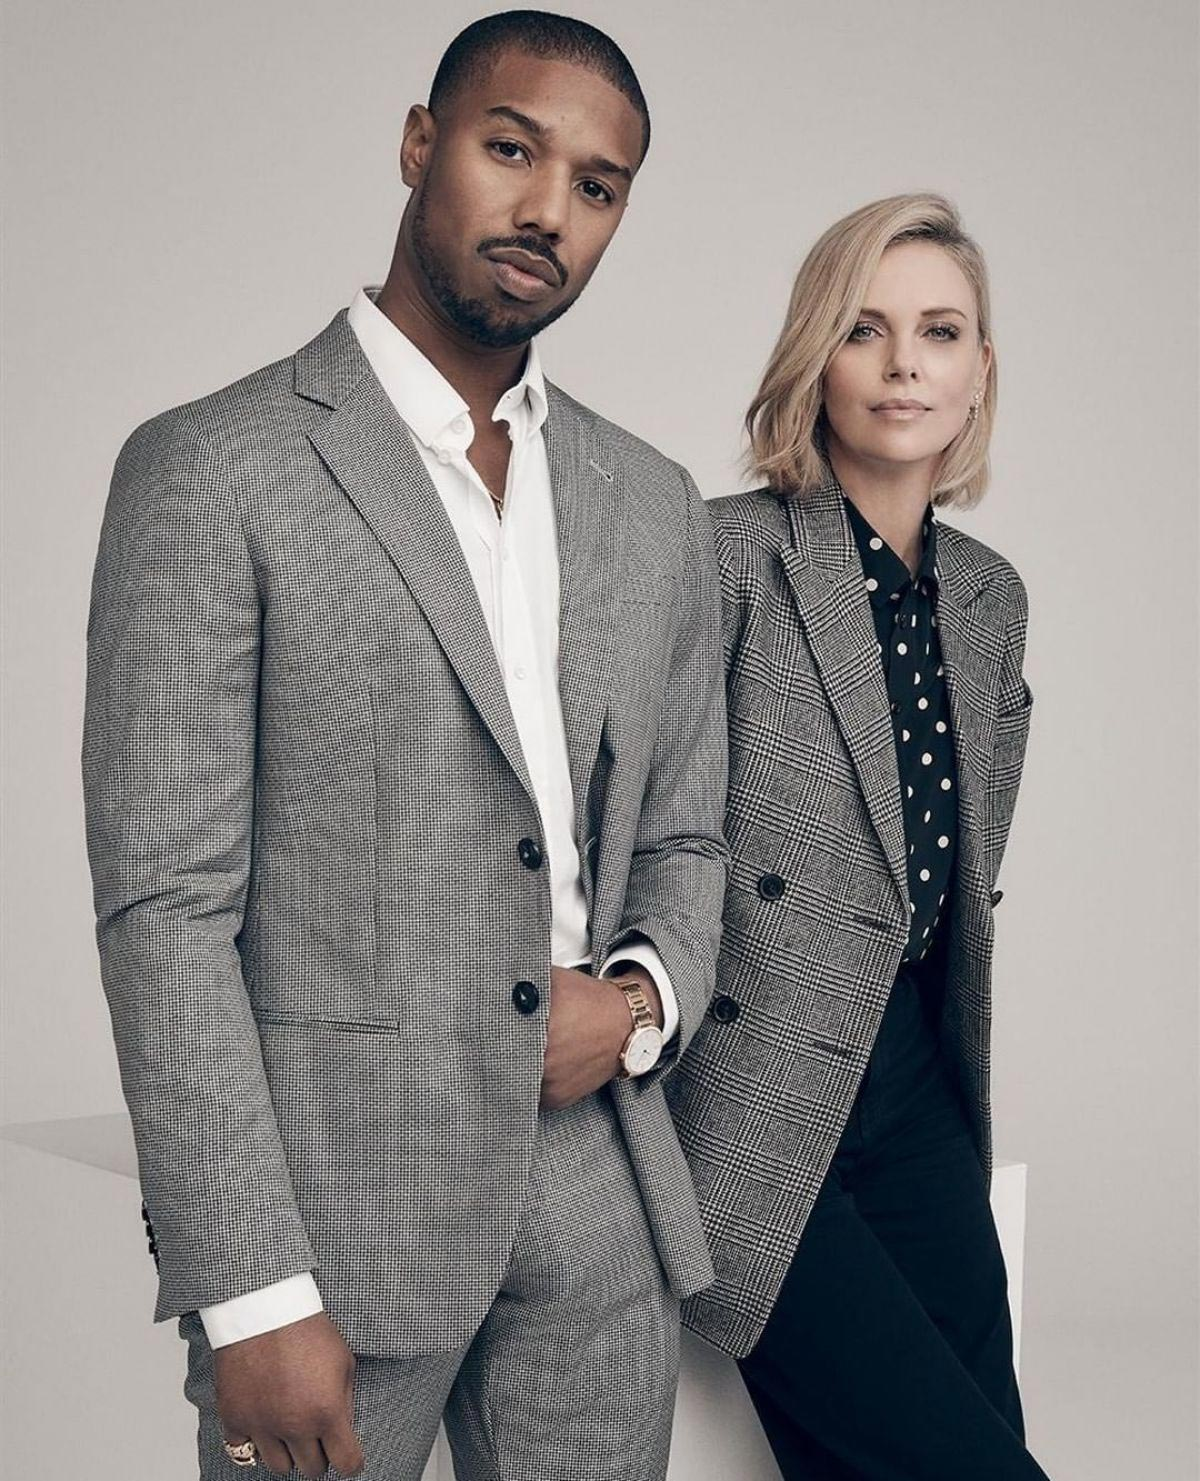 Charlize Theron and Michael B. Jordan for Variety Magazine, December 2018 1